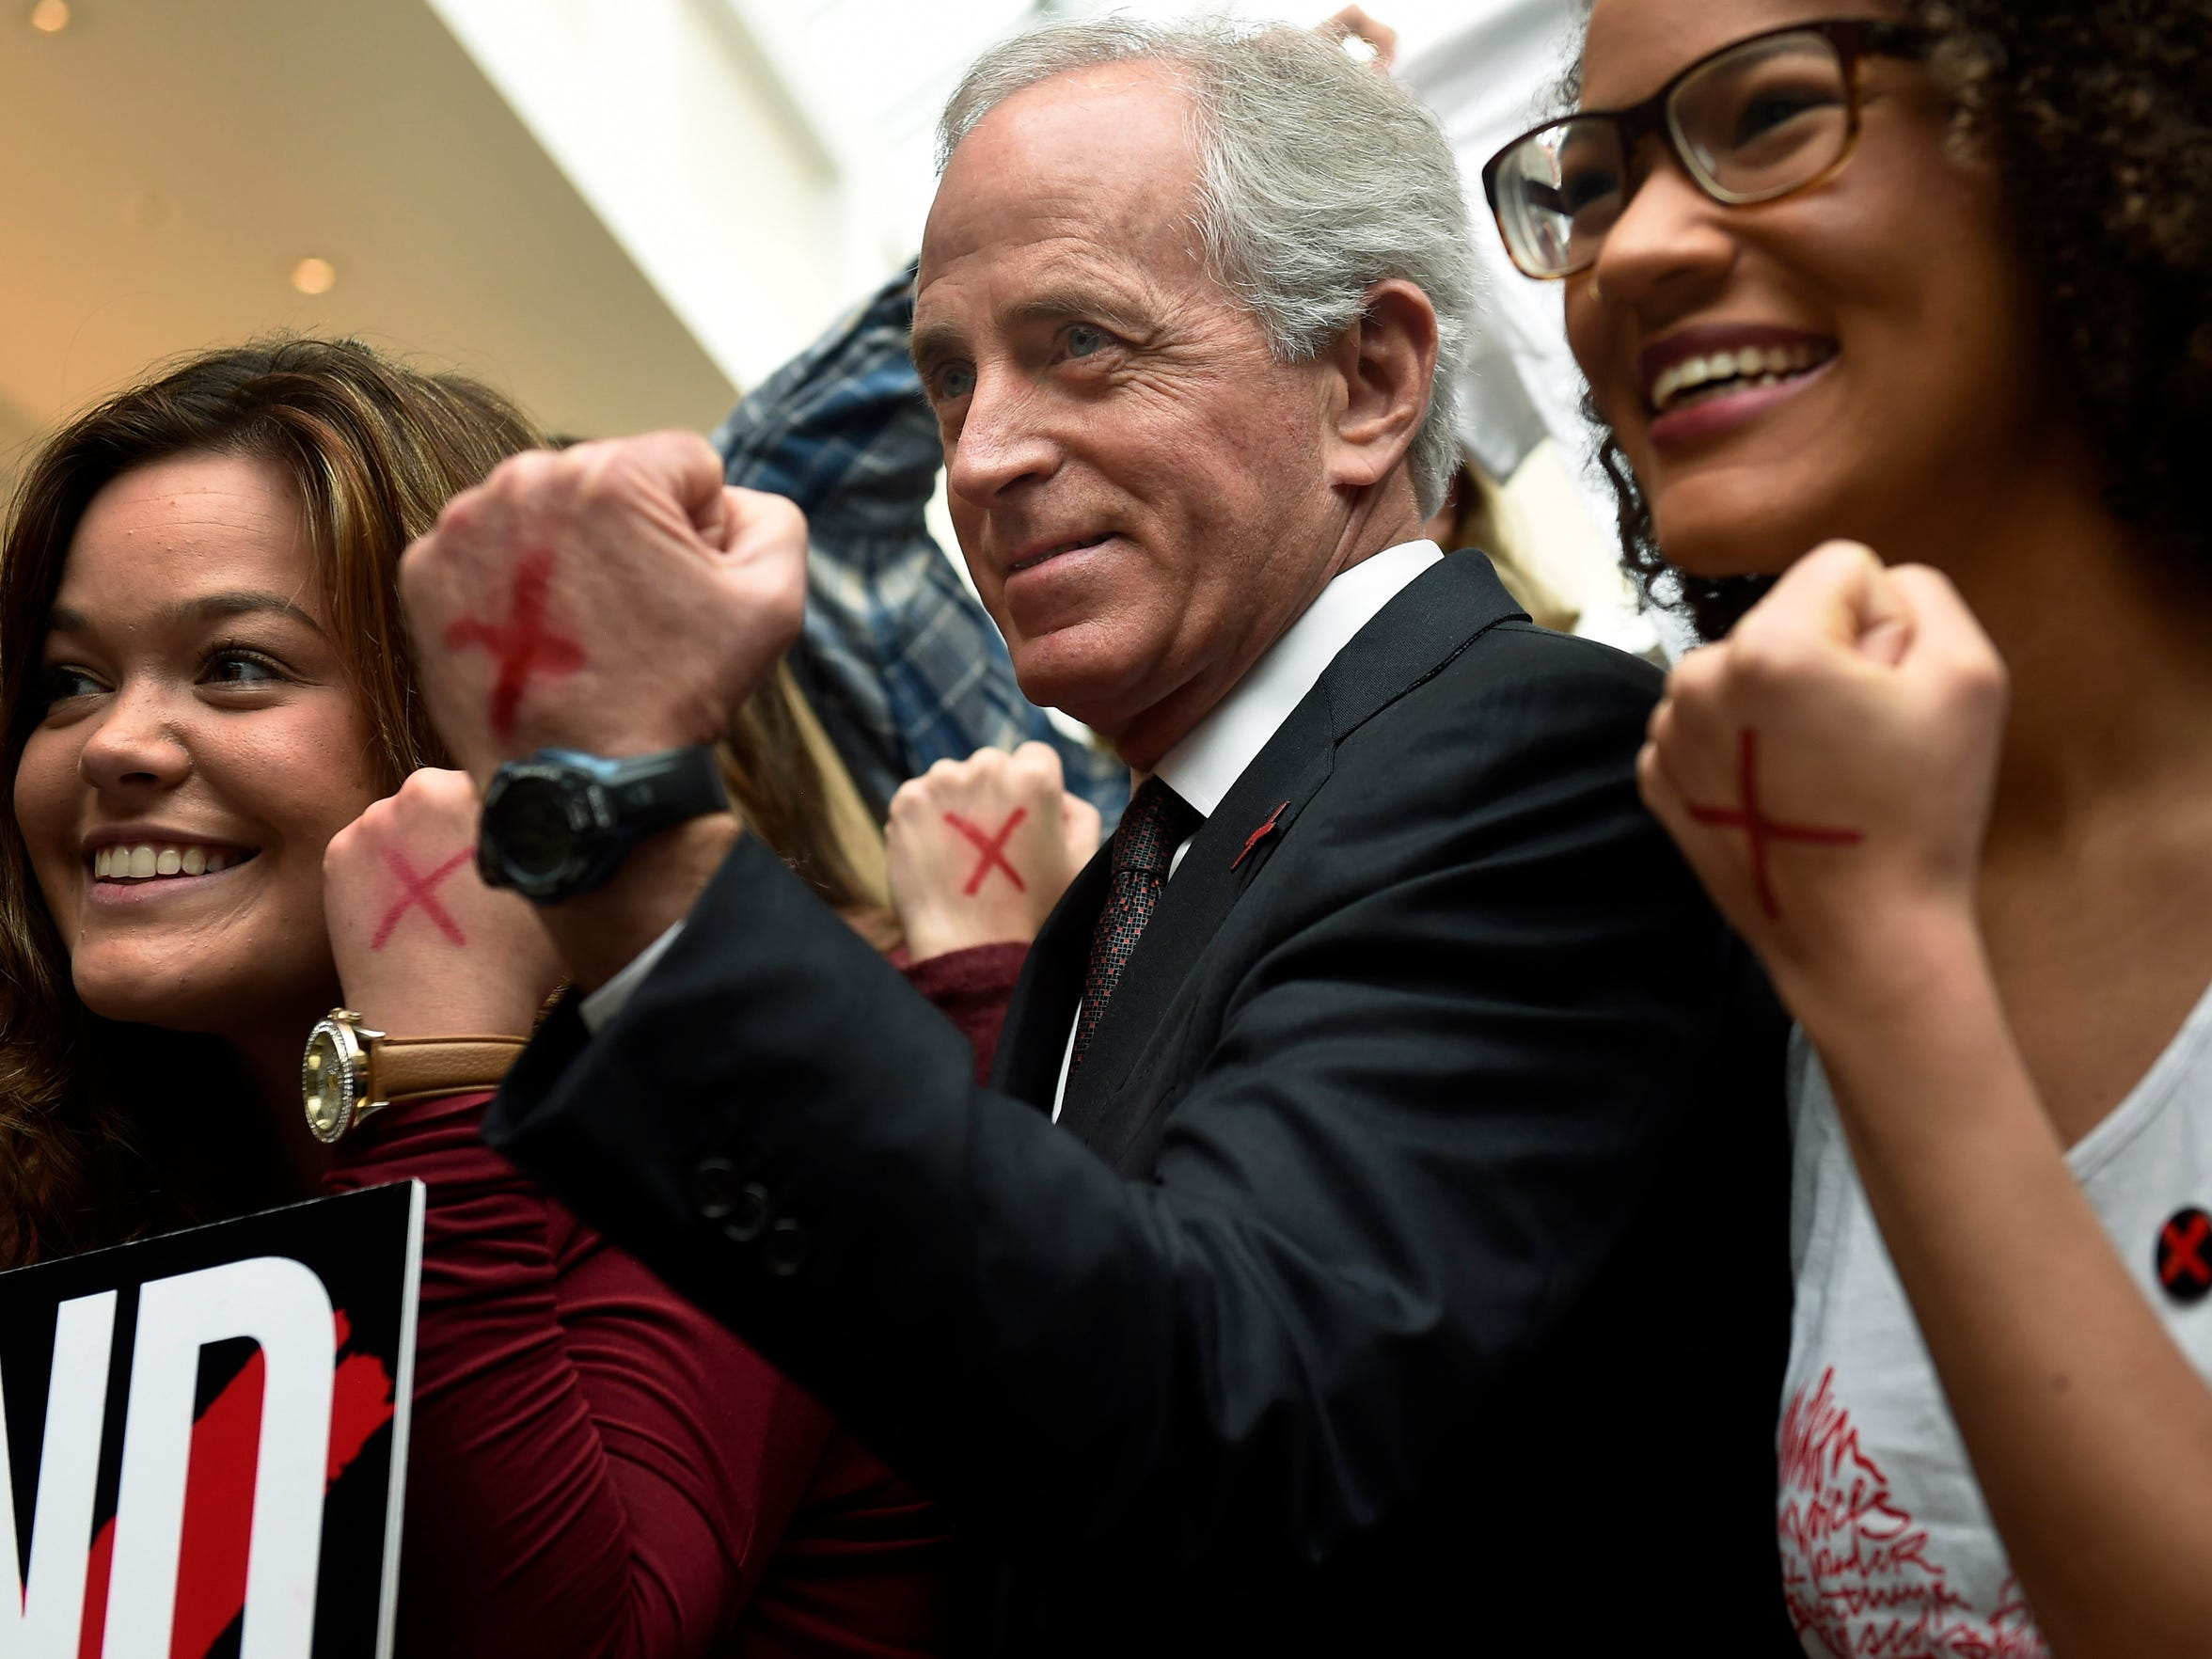 Sen. Bob Corker and others show the red X's on their hands in the effort to end human trafficking.